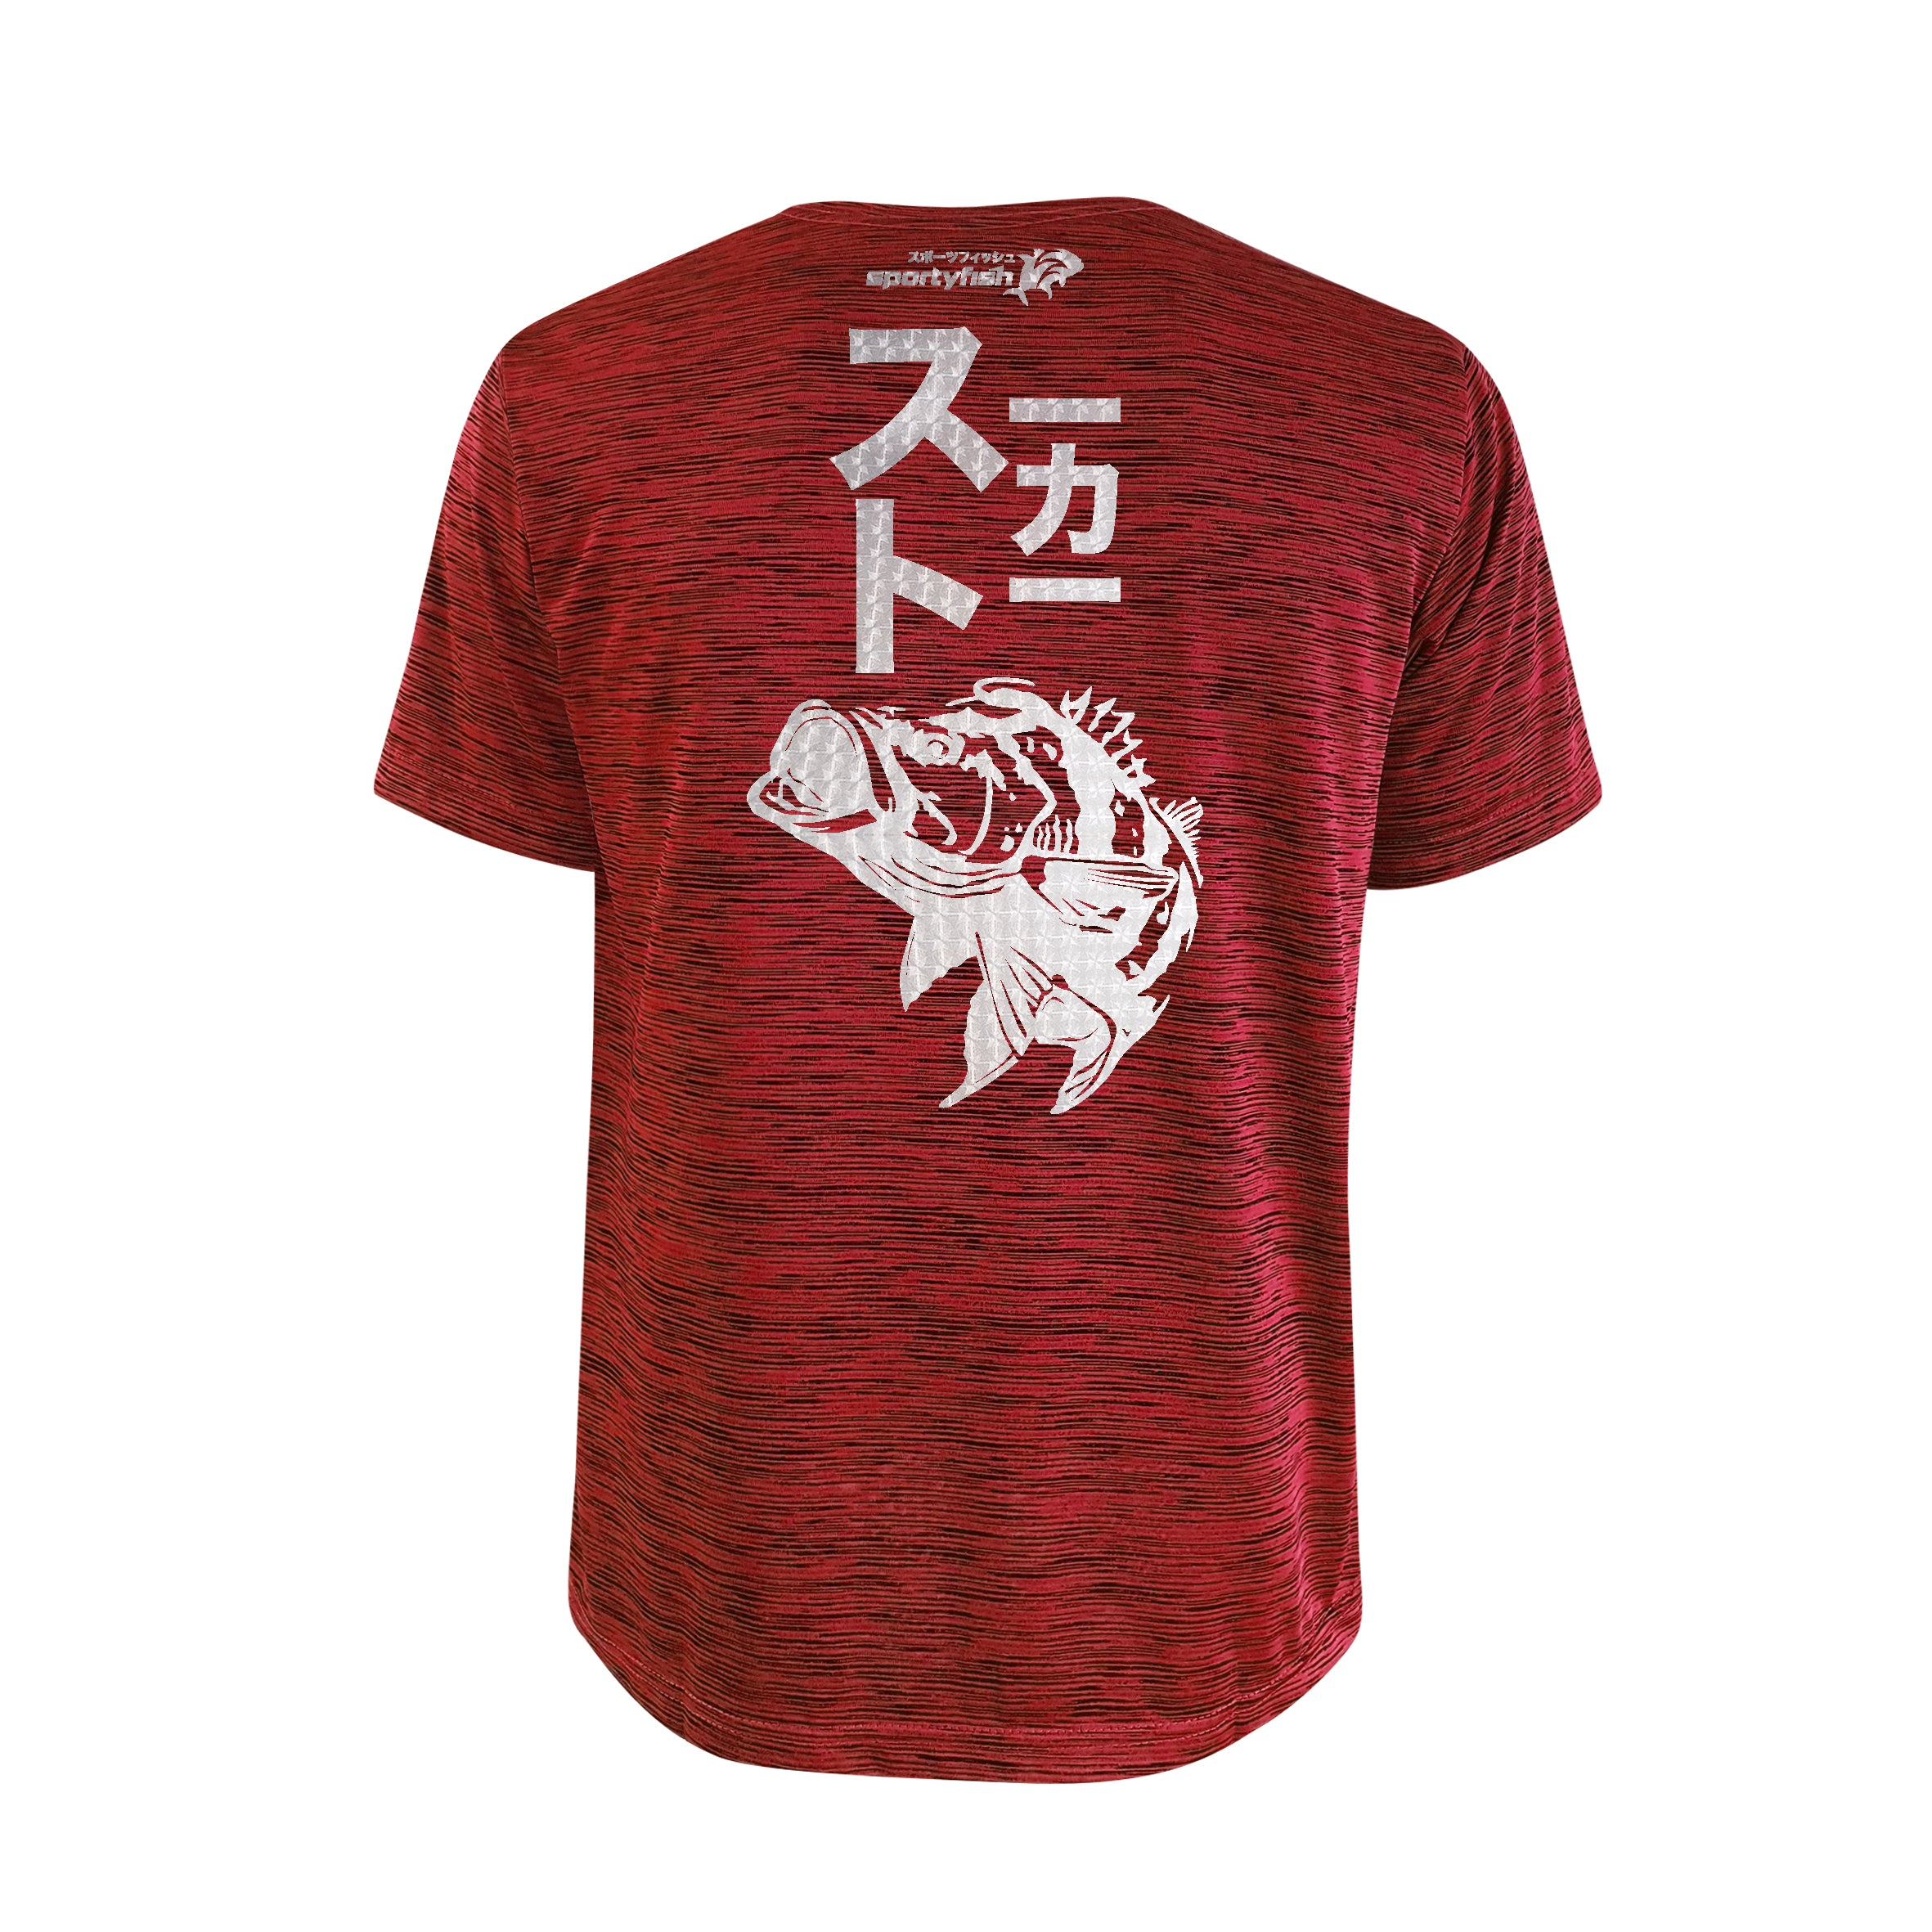 Bold Series Red T-shirt(SS): The Peacock Bass(Stealth Stalker)(In Japanese Words)